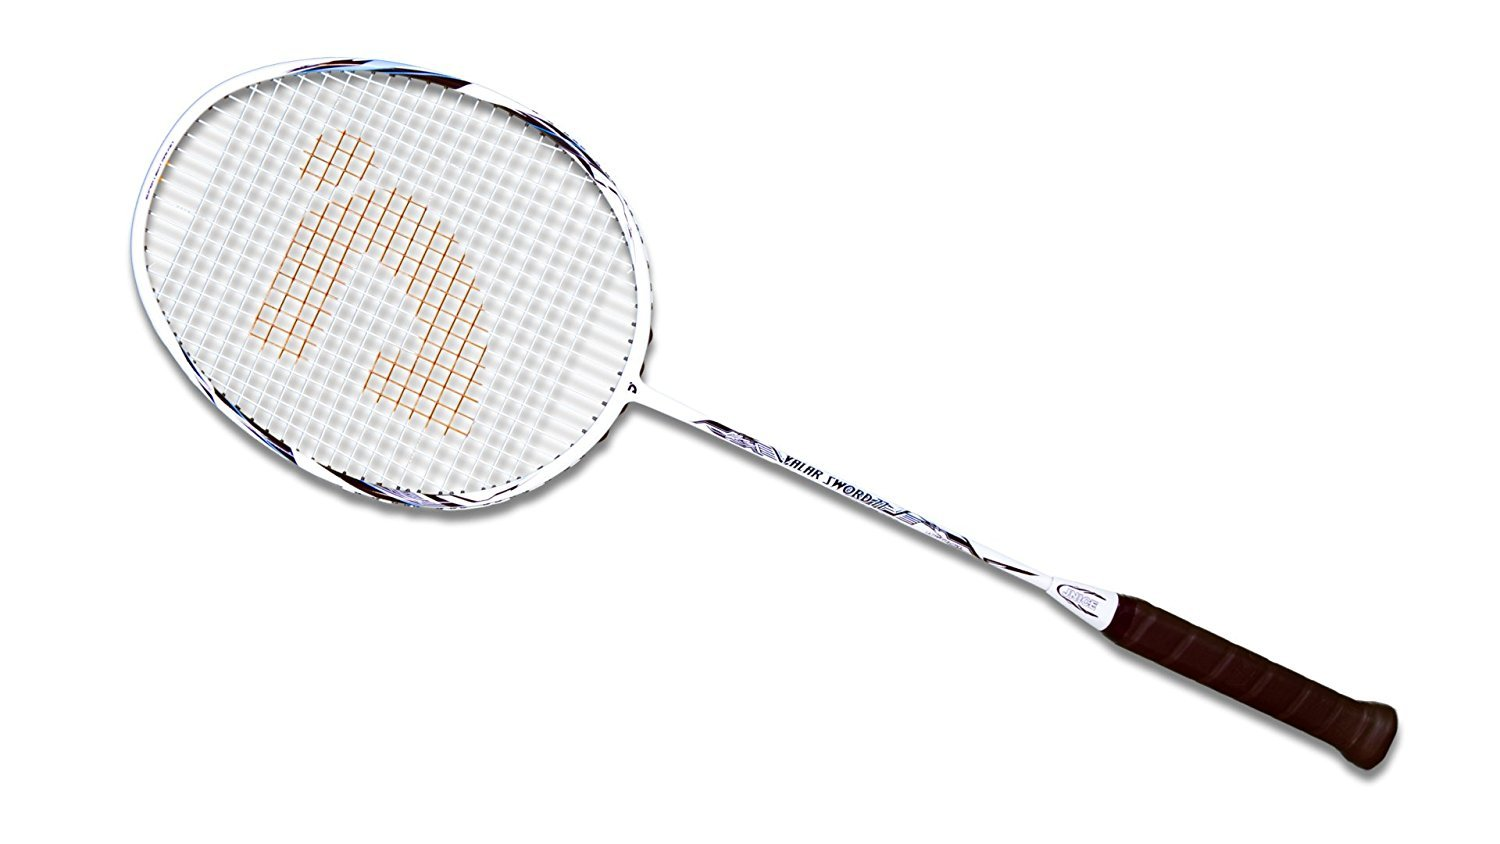 Taiwan Present JNICE Graphite Frame Lightweight Badminton Racket Including Carrying Bag and Grip Replacement by Taiwan Present (Image #1)